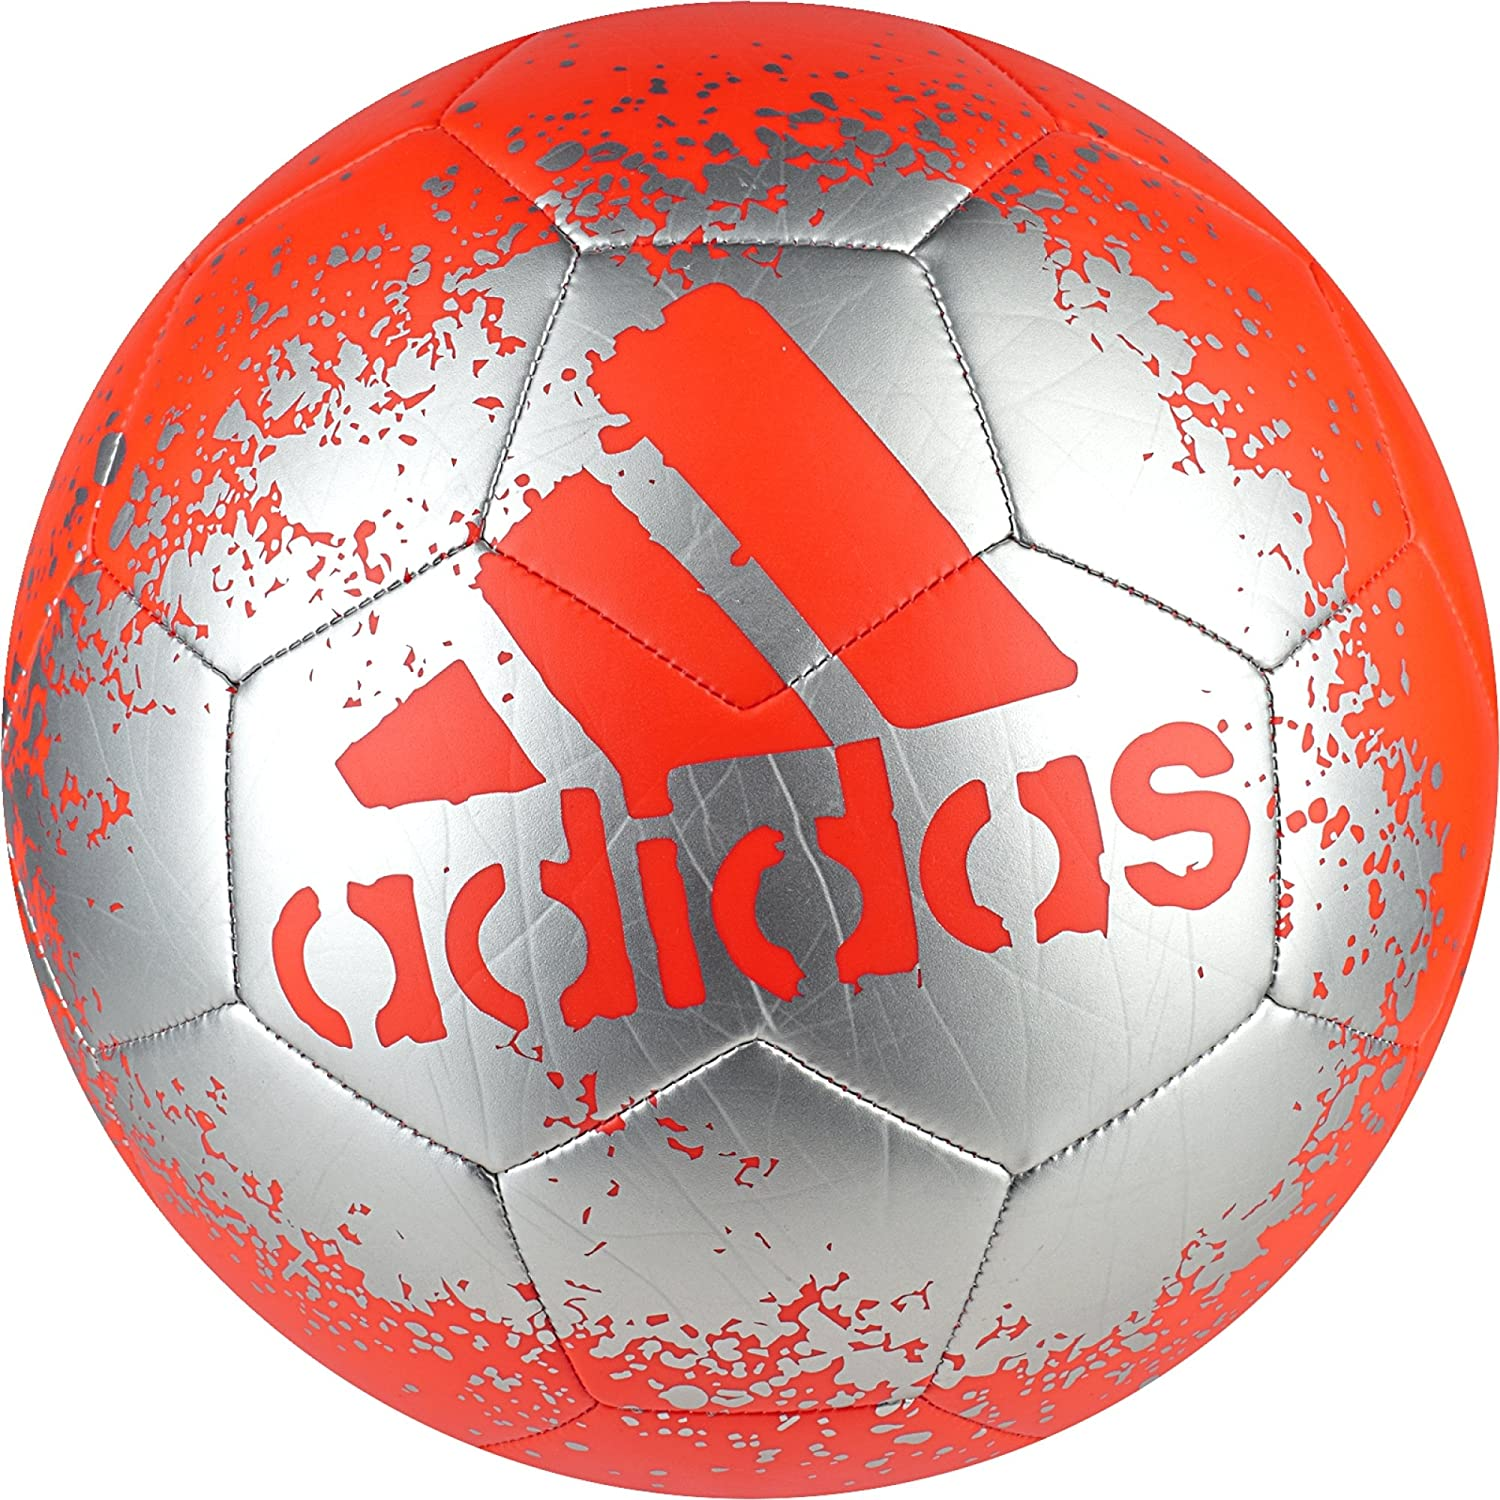 Buy Adidas X Glider Ii Football, Men's UK 5 (Red) Online at Low Prices in India - Amazon.in